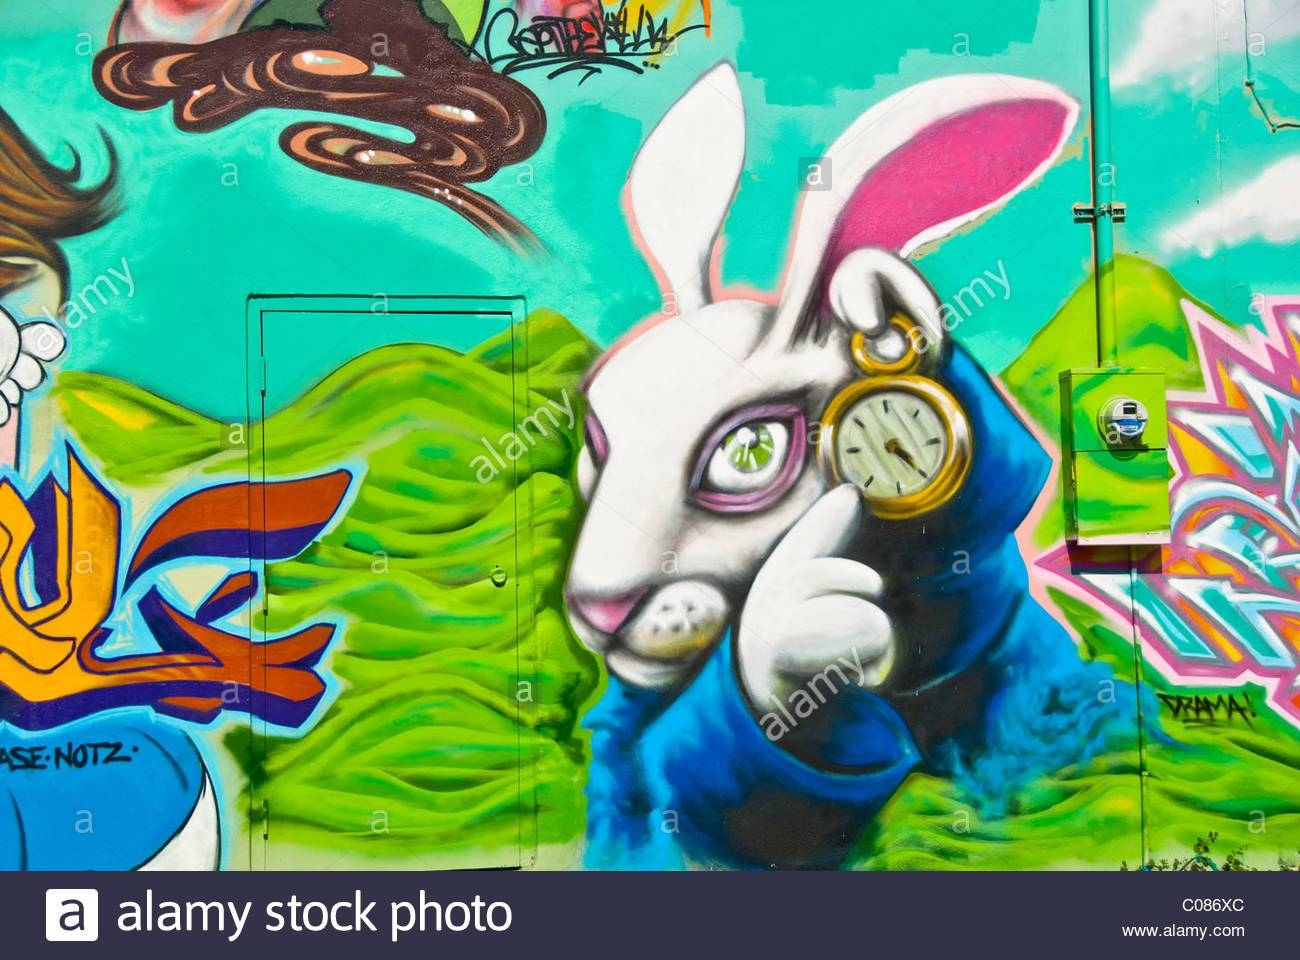 "Alice In Wonderland"" Graffiti Wall Art Mural Detail In Wynwood Art Inside Current Miami Wall Art (View 11 of 20)"